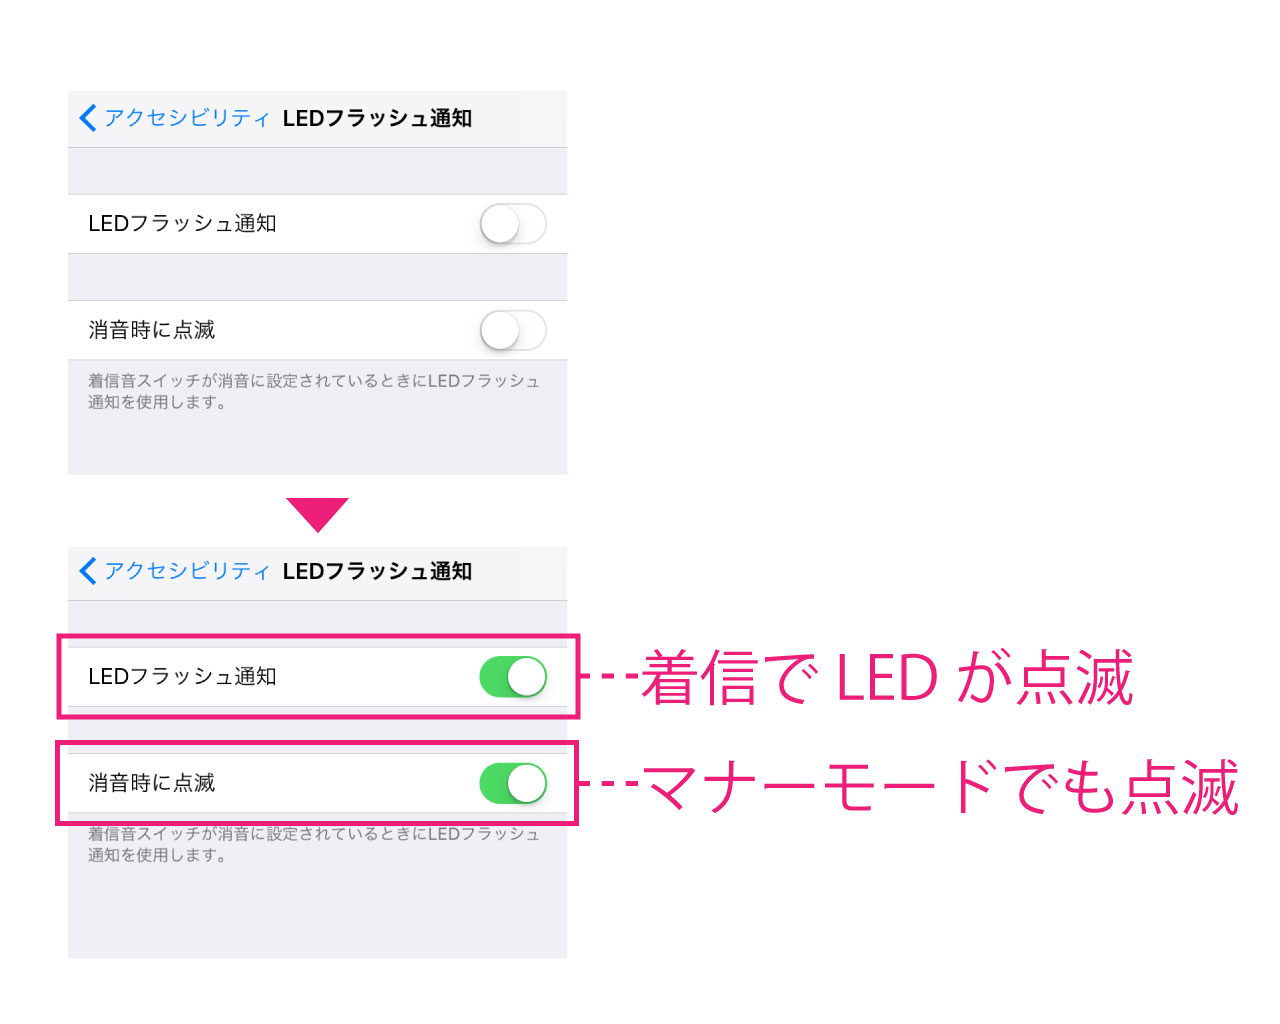 iphone-led-flash-for-alerts-setting-on-off-1